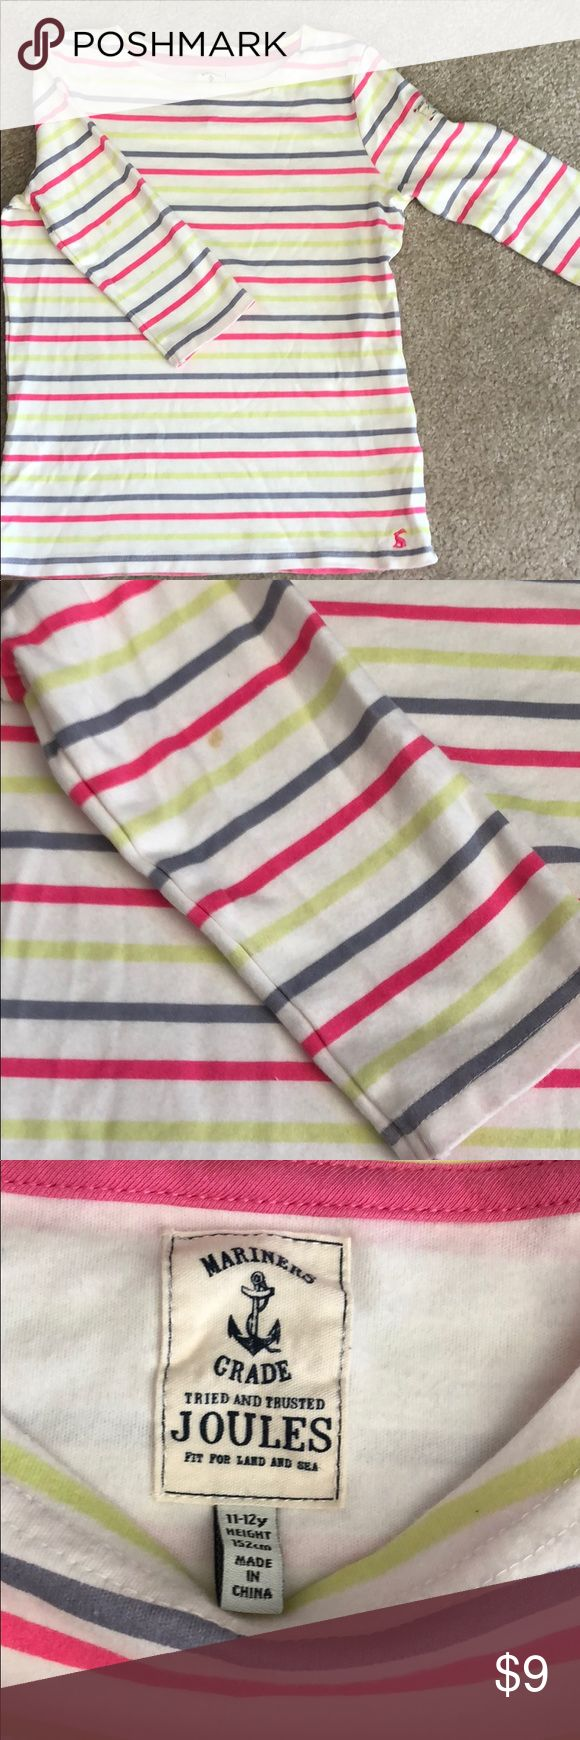 Joules 3 quarter stripped sleeve t shirt 11-12y ✨ ✨can add to bundle for 3 for $12✨ See picture for 2 small stains on back of sleeves Joules Shirts & Tops Tees - Long Sleeve